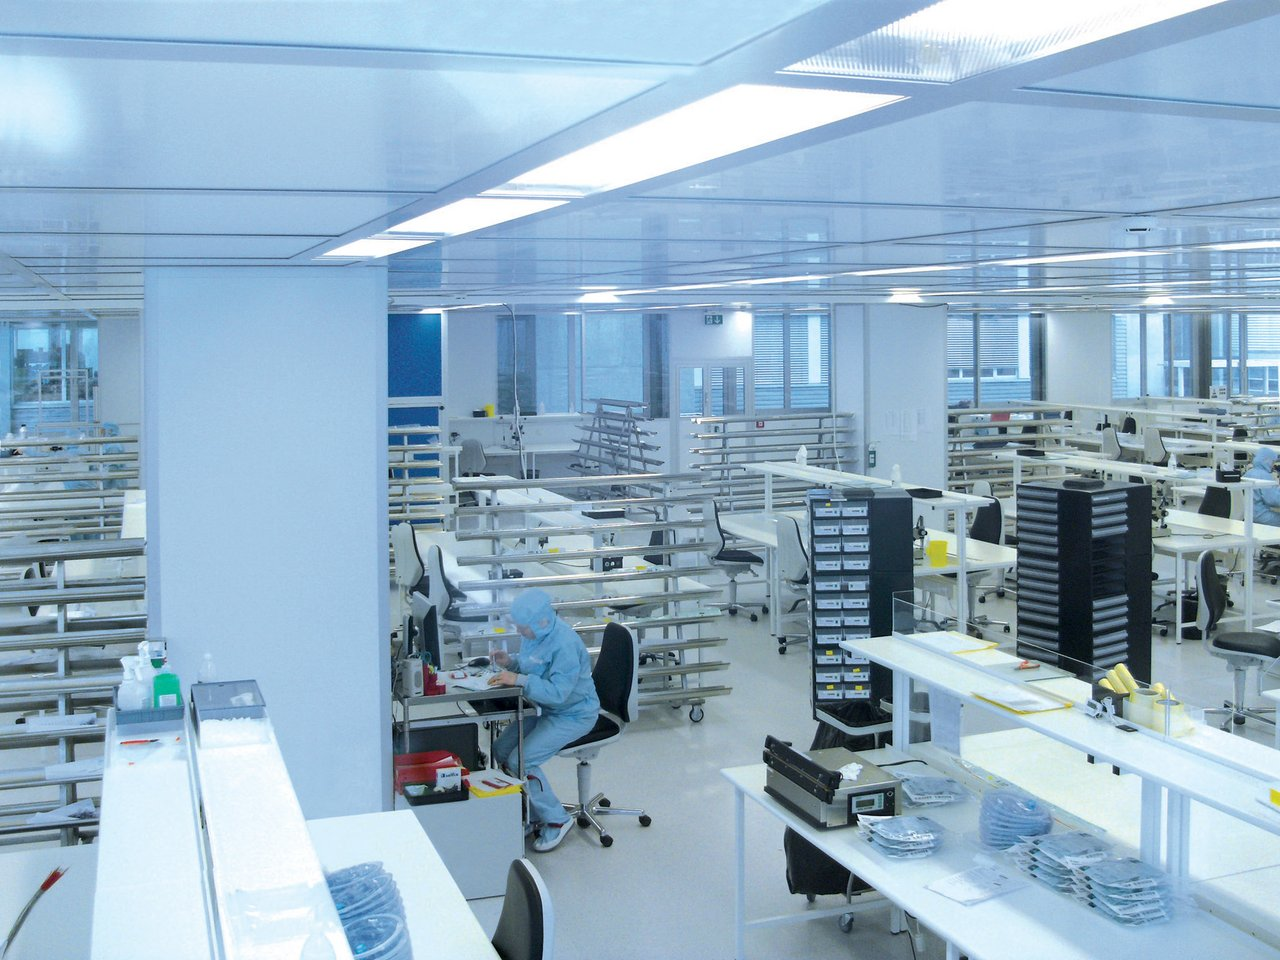 Cleanroom for stents and catheter production, ISO 8